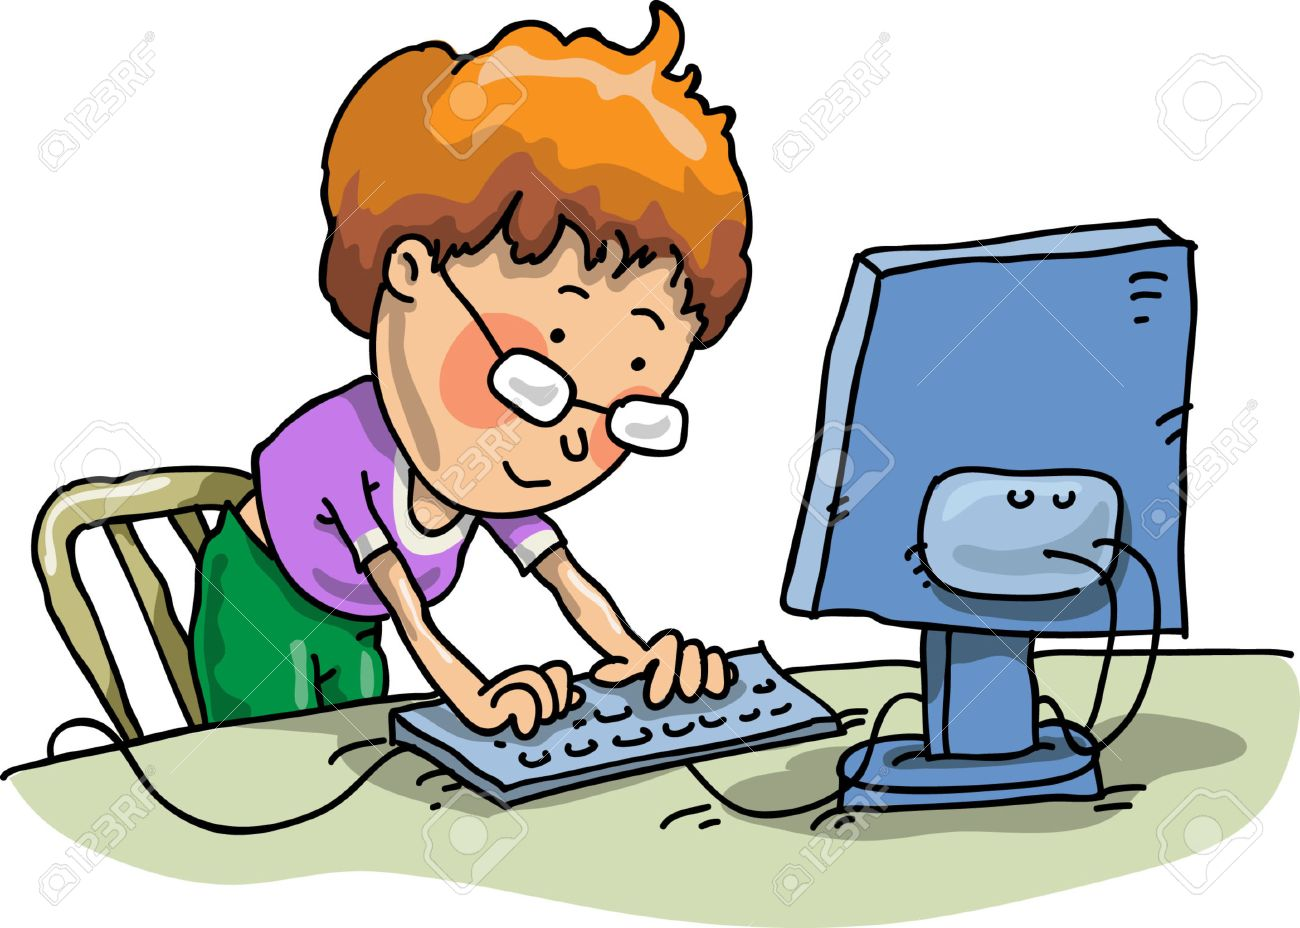 The Boy With The Computer Stock Vector - 4885483